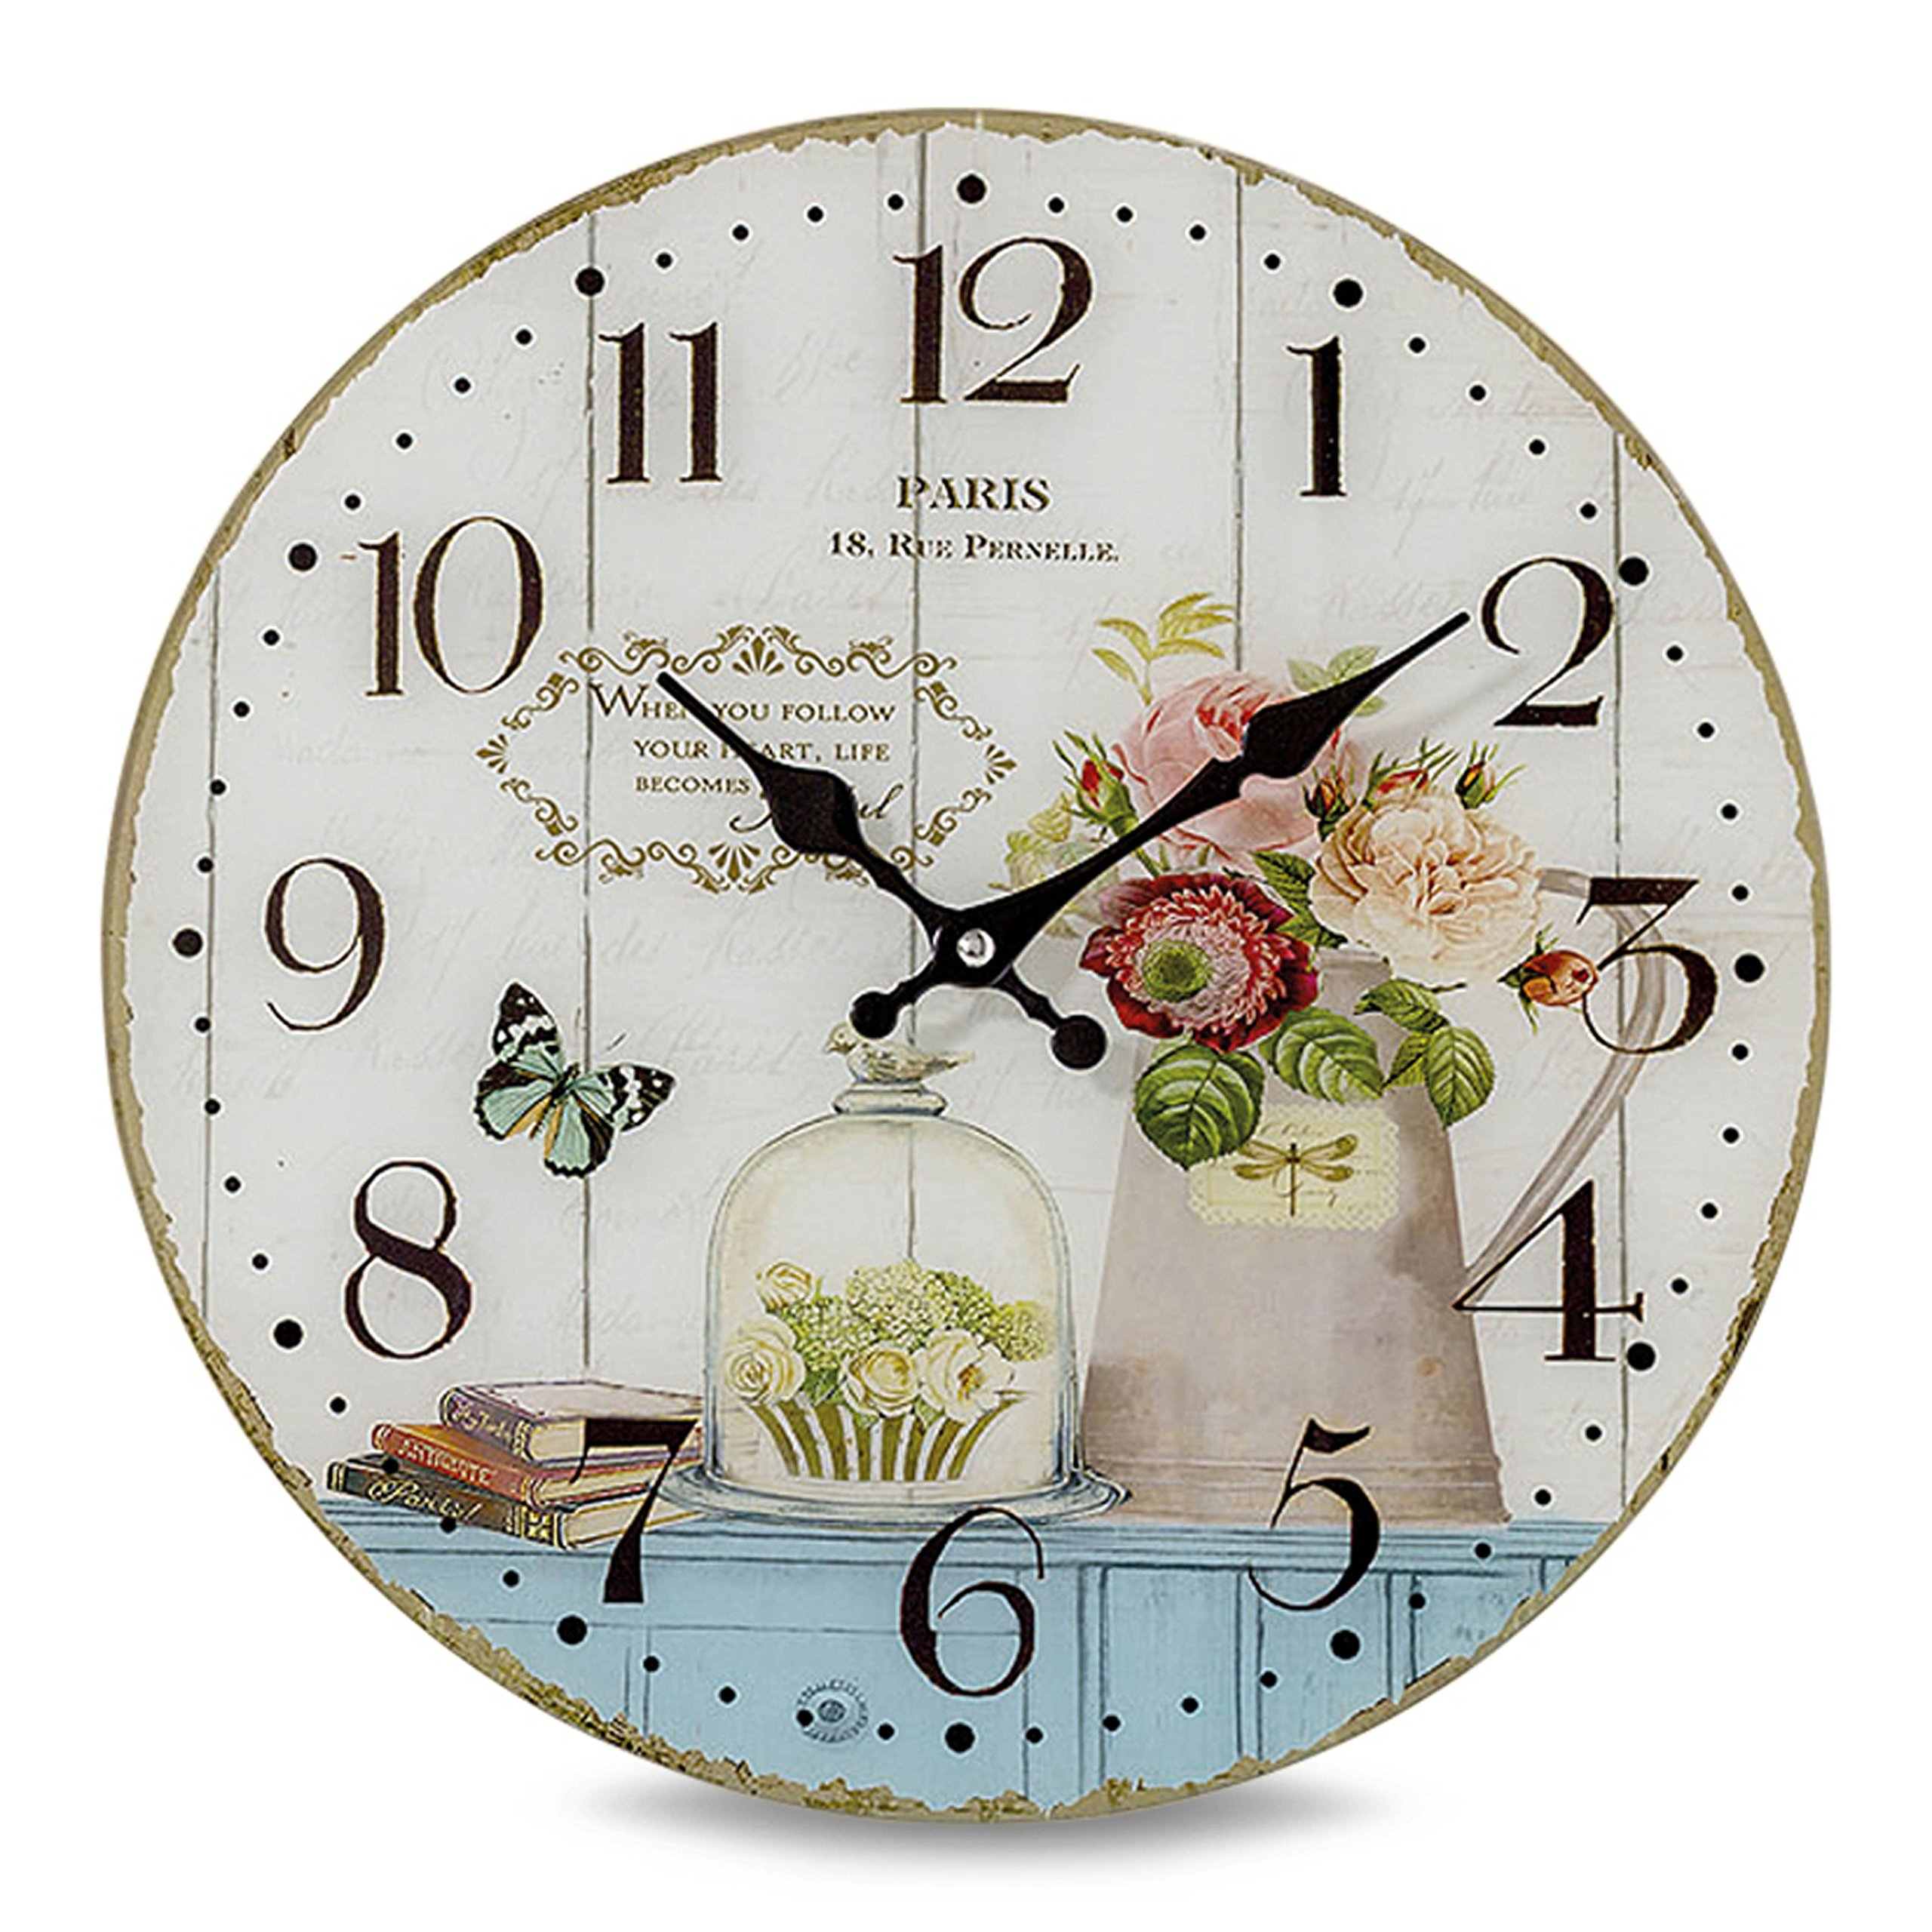 Whole House Worlds The Paris Kitchen Clock,Glass, Antique Vintage Cafe Style, Over 1 Ft In Diameter, Analog Timepiece, Battery Powered, (1 AA Required) By by Whole House Worlds